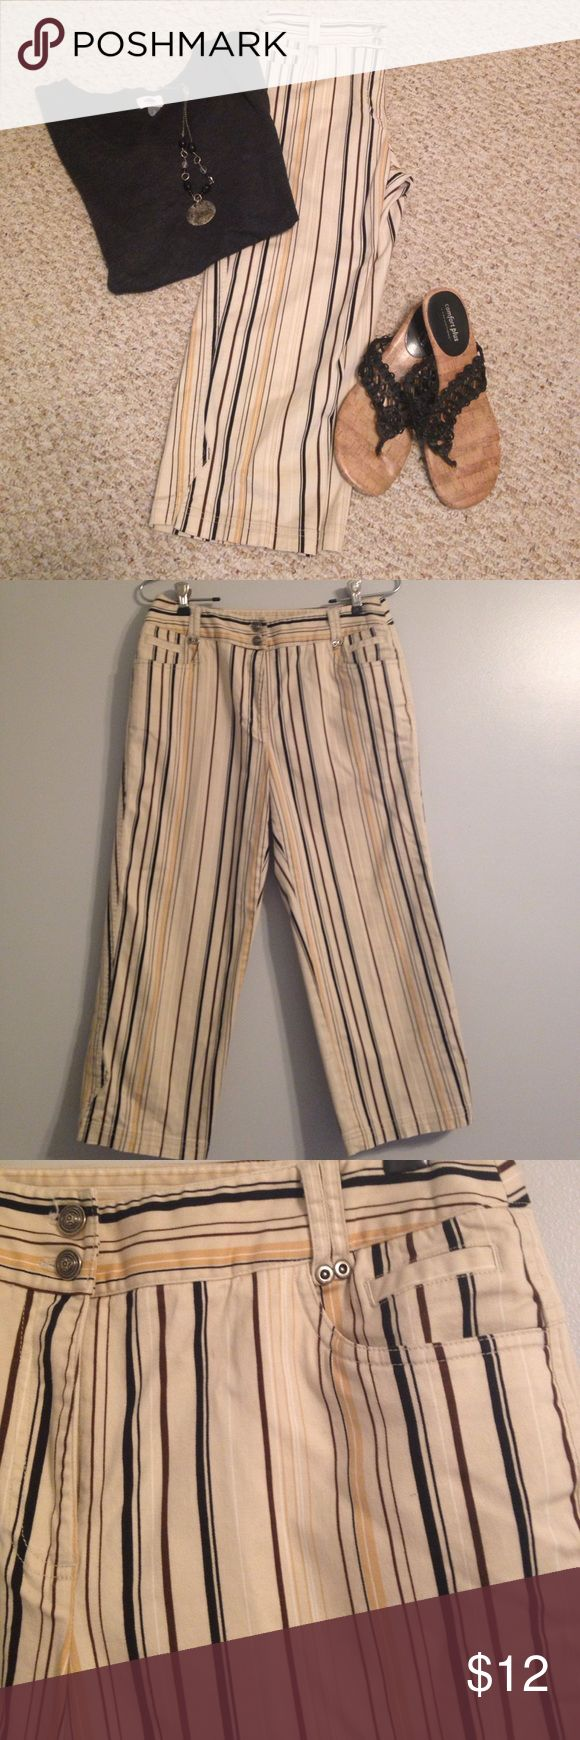 "🆕 Listing! Cute Rafaela Striped Cropped Pants So different, a real Statement Piece!  Cotton/spandex for comfort, perfect condition.  Tan, brown, burgundy stripes, 22"" inseam, cuffs measure 8"" across.  Cute detail at bottom vents. Rafaella Pants Ankle & Cropped"